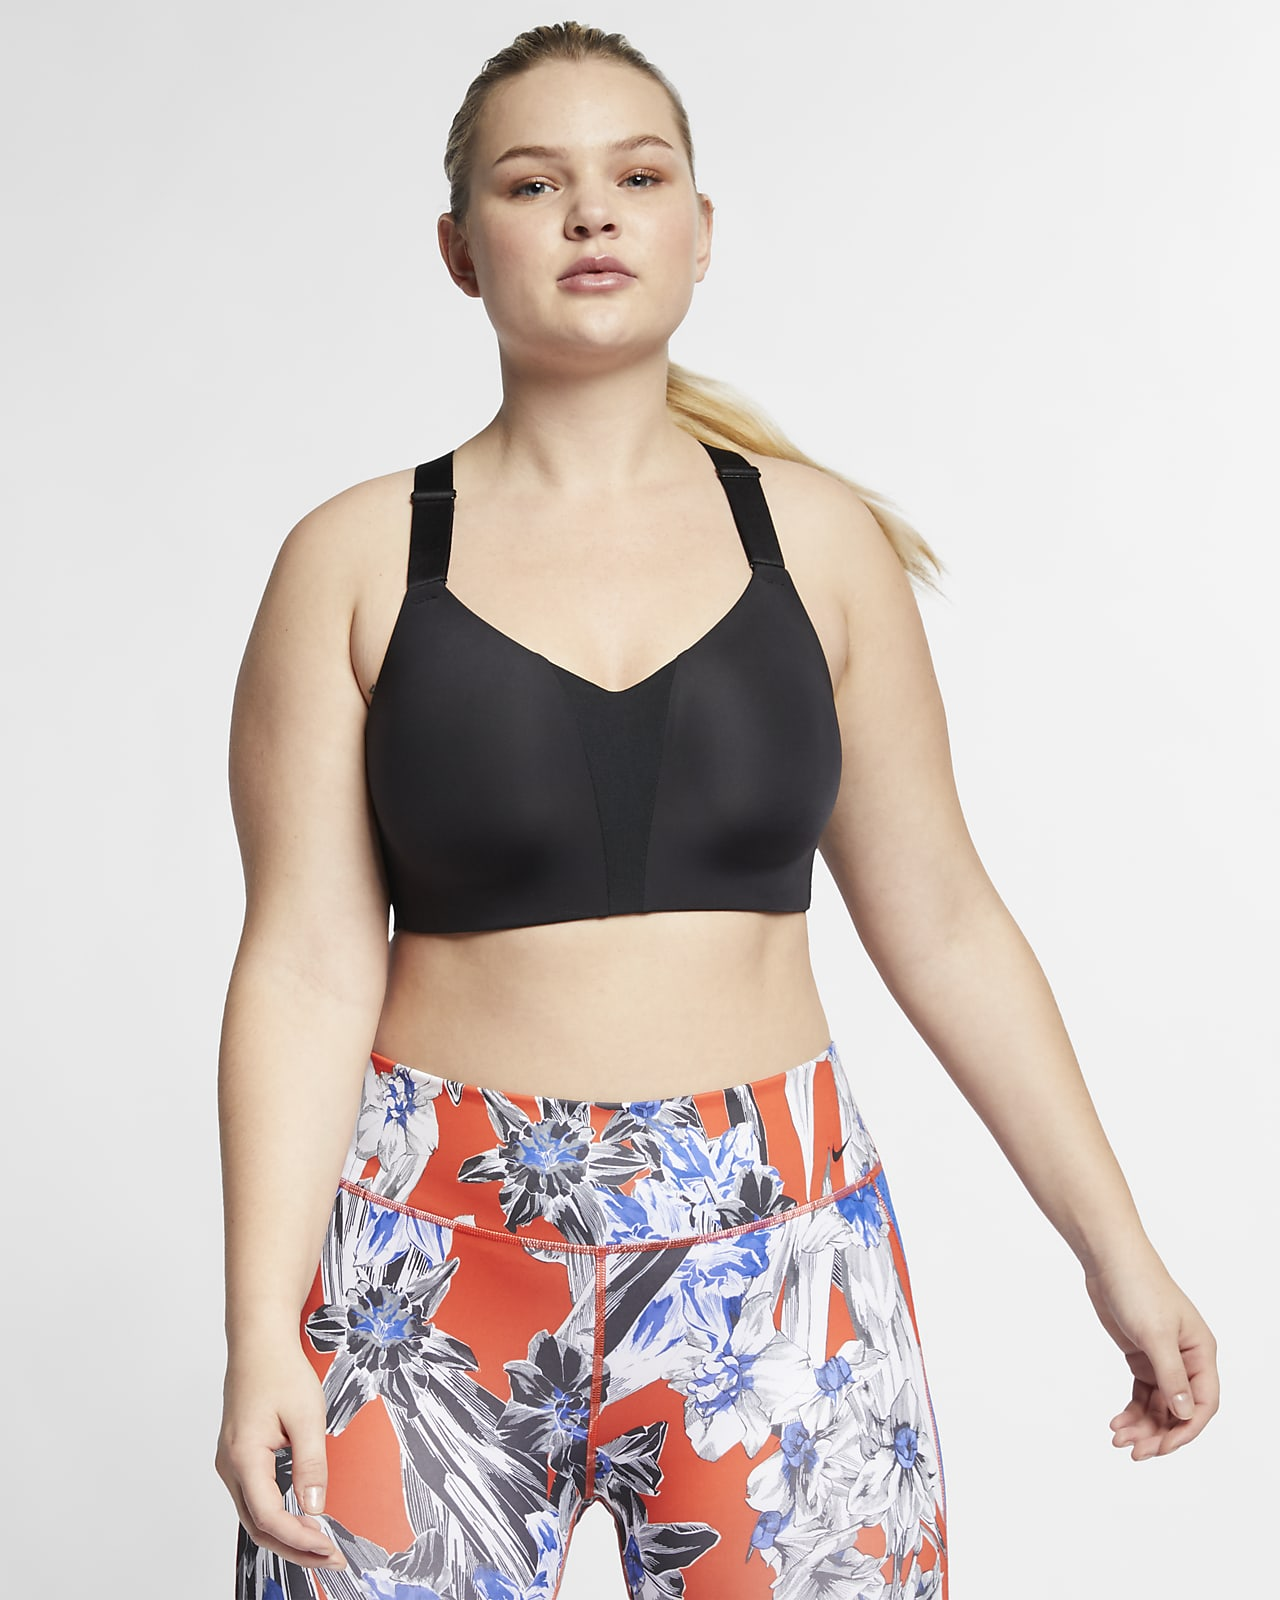 Nike Dri-FIT Rival Women's High-Support Underwire Sports Bra (Plus Size)